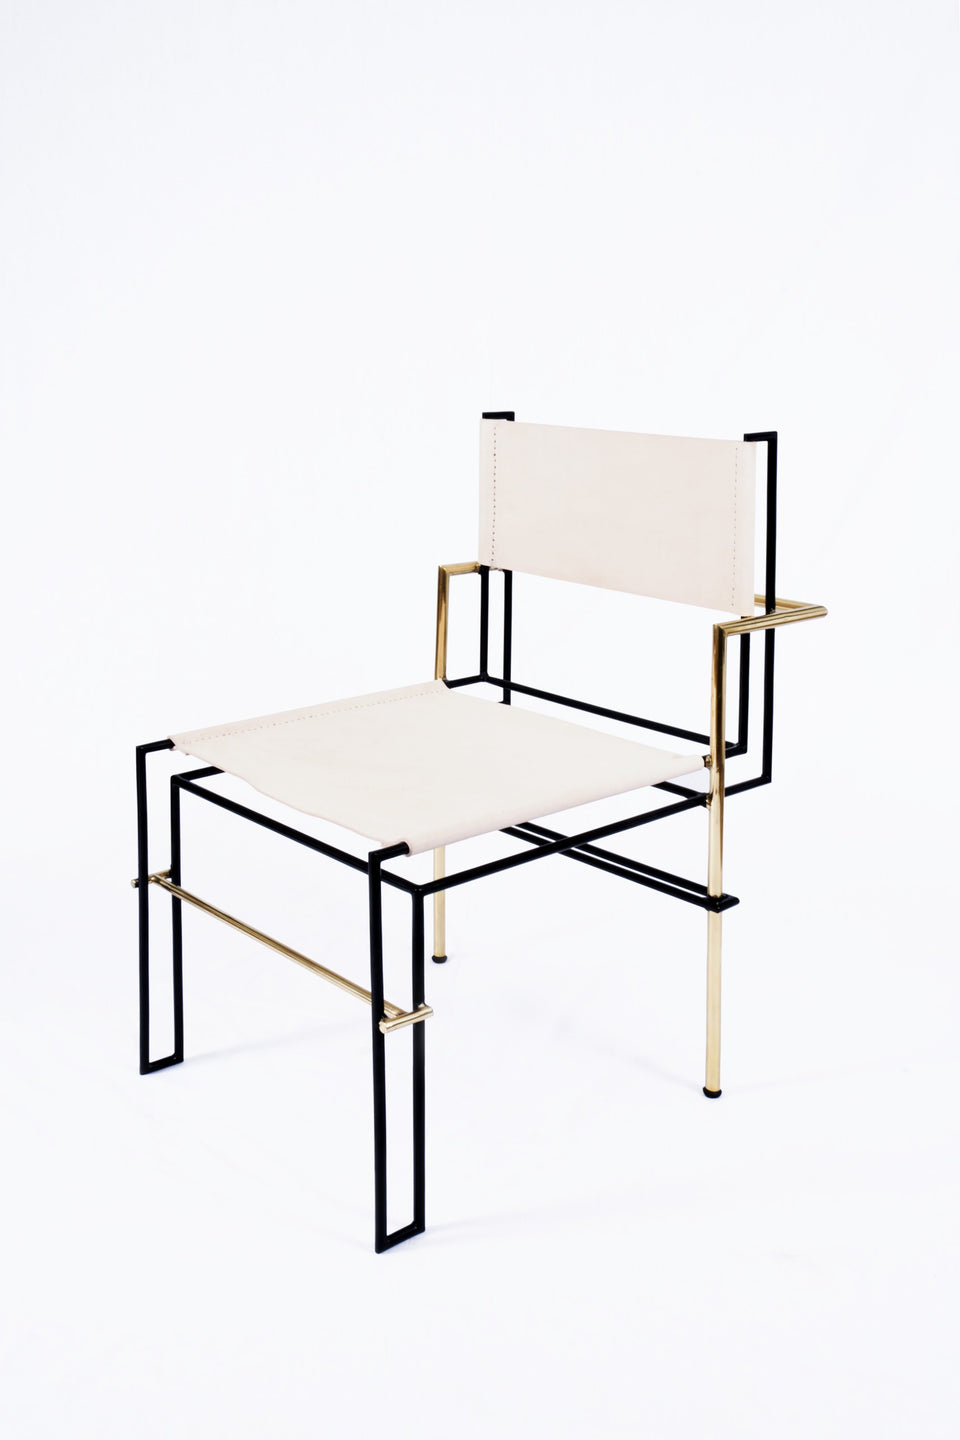 Design Disrupters Casbah brass, black metal chair frame white leather